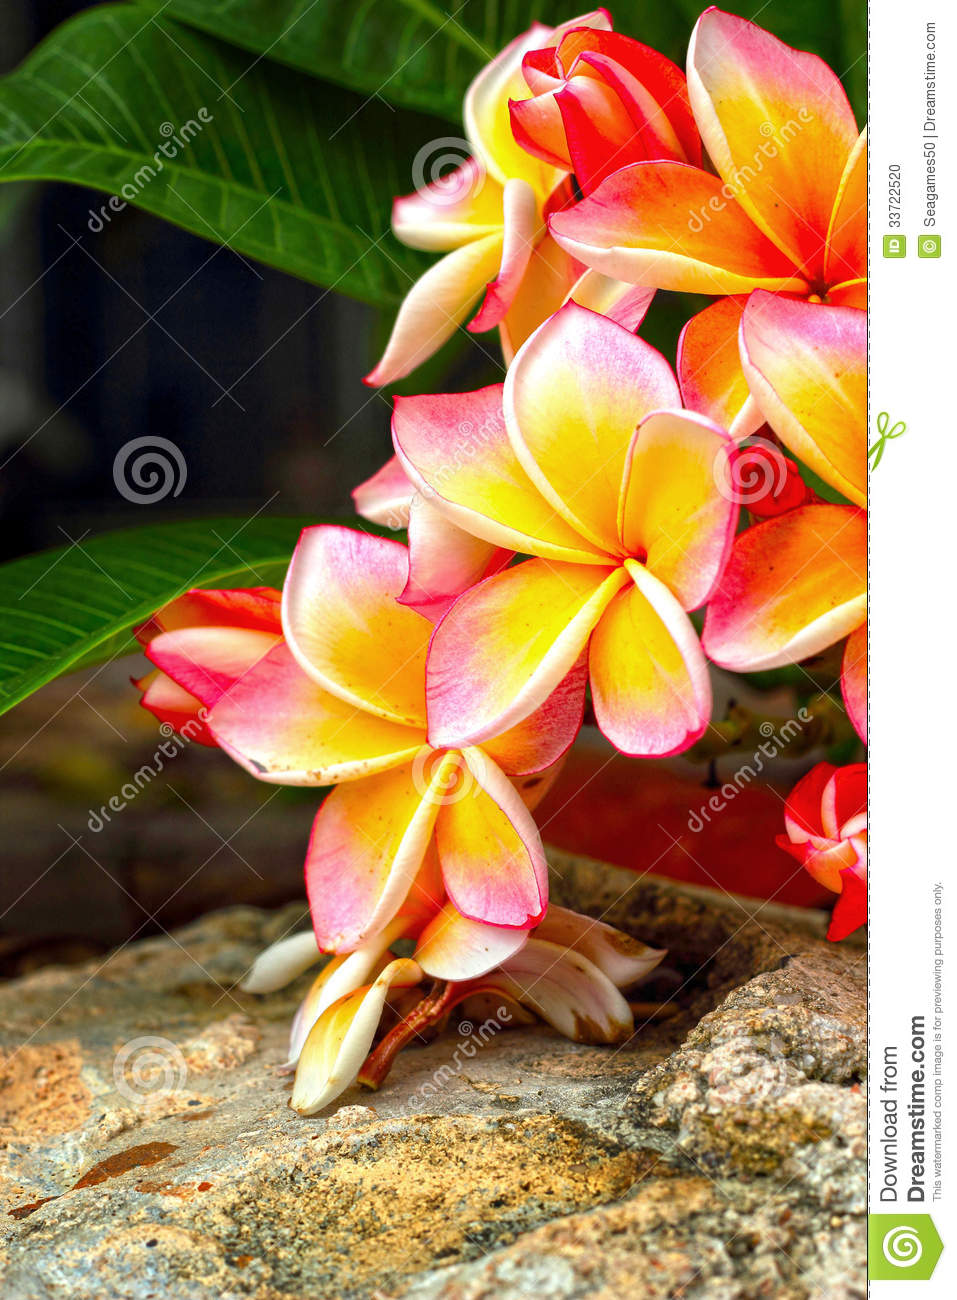 Frangipani flower pink flowers yellow in nature stock photo download frangipani flower pink flowers yellow in nature stock photo image of petal mightylinksfo